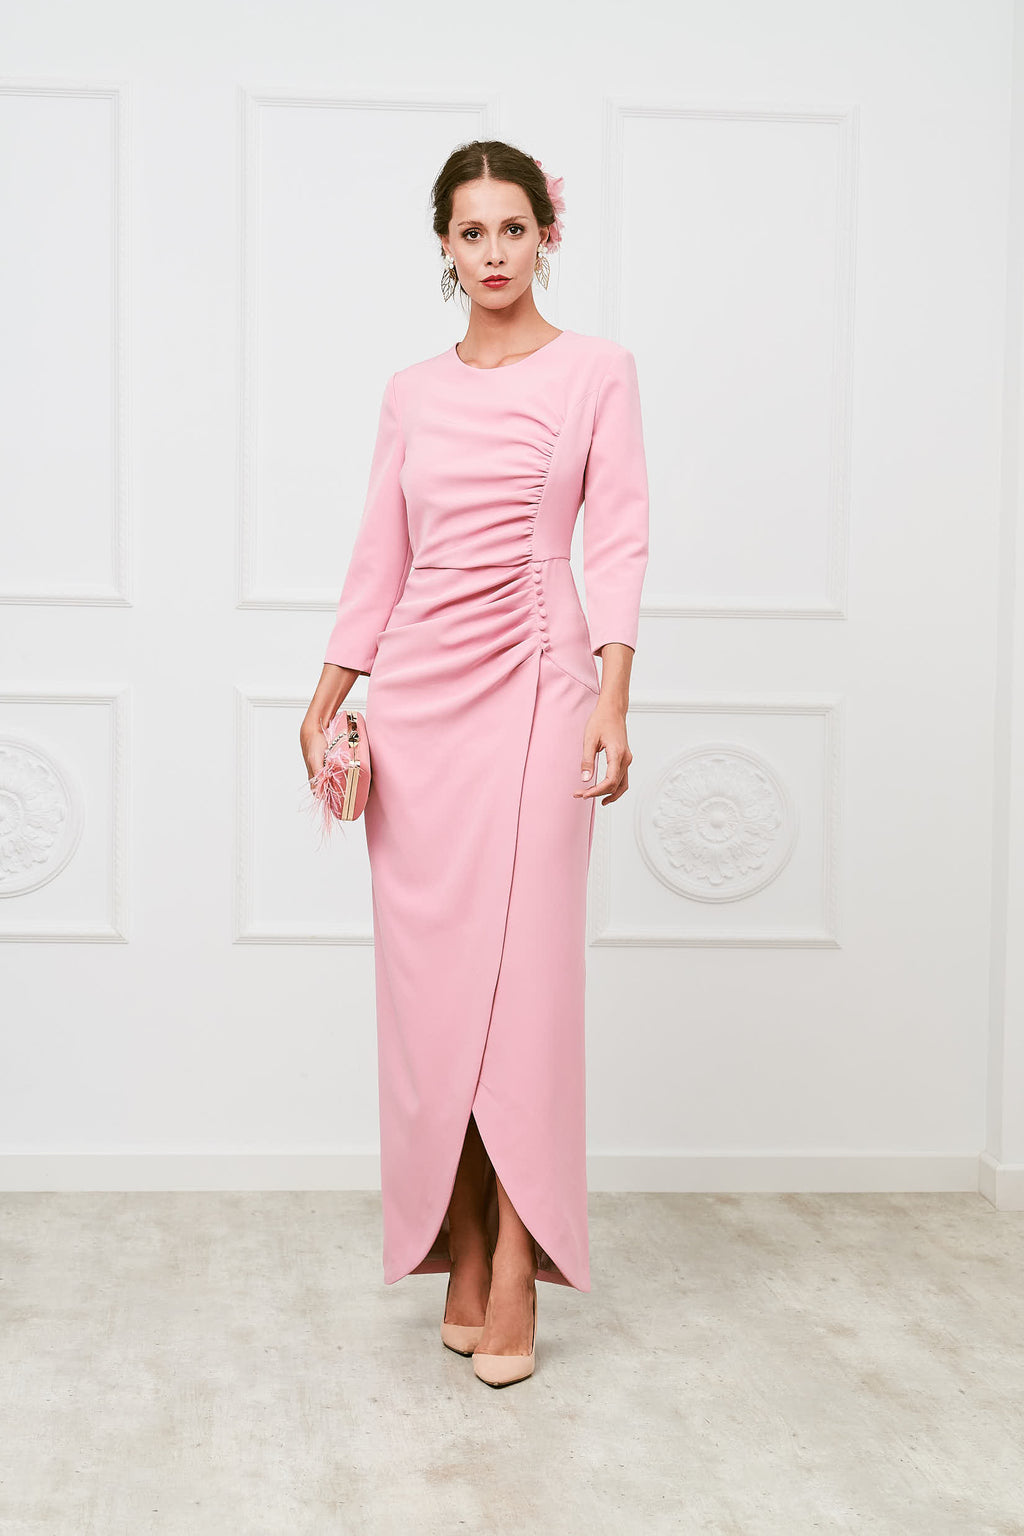 Beth II long godmother dress - Pink - fits the body - Long sleeves